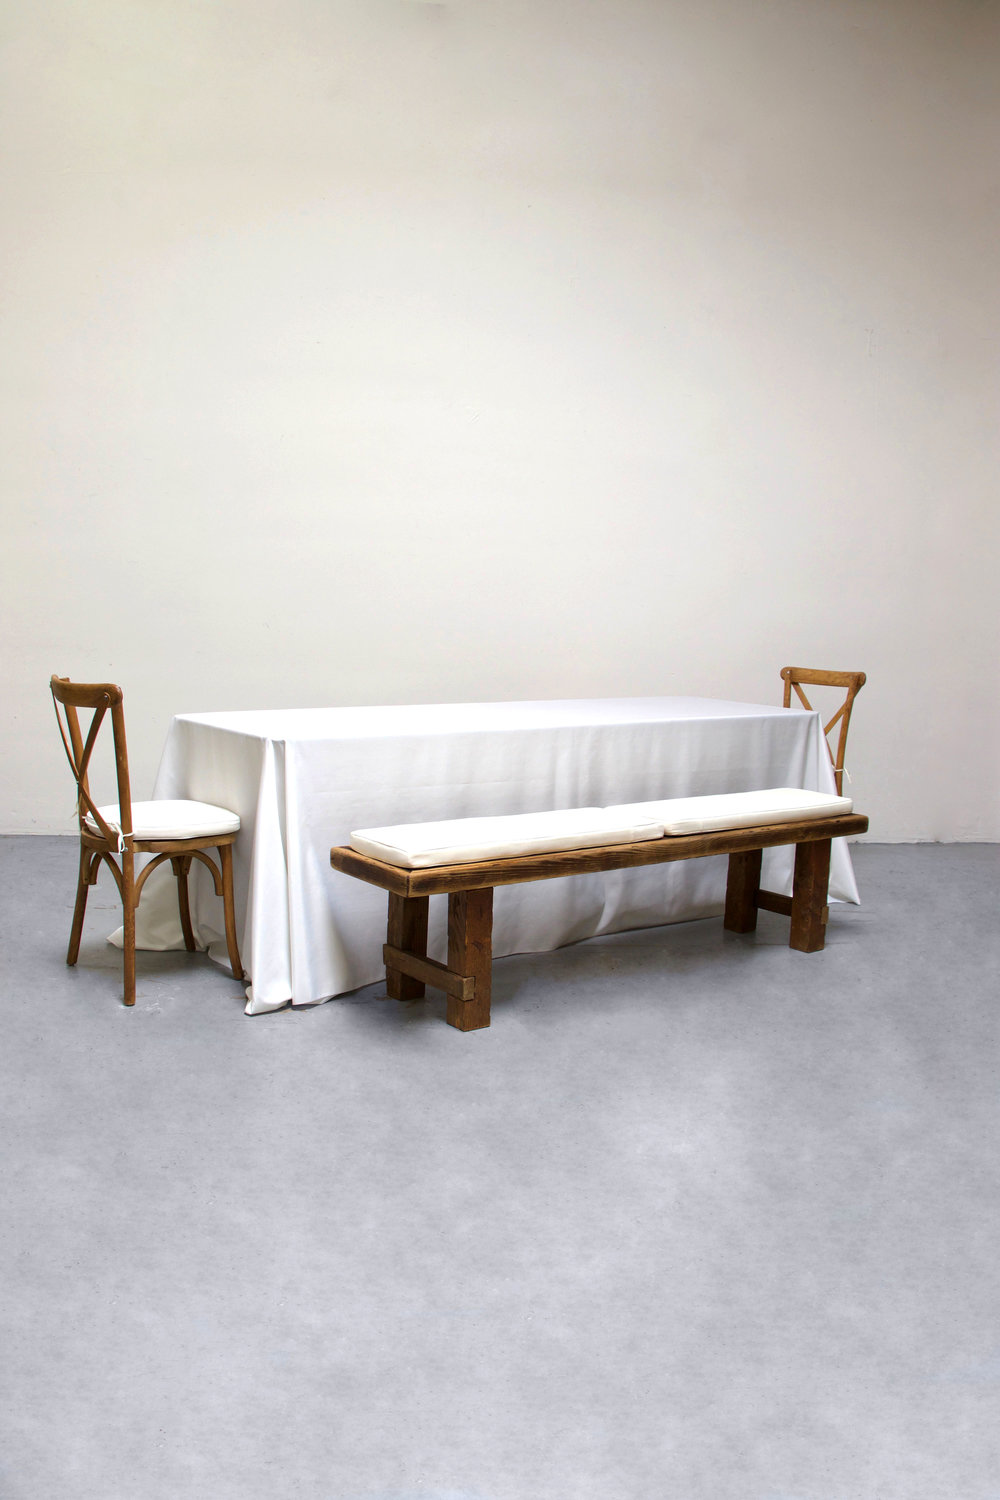 1 Banquet Table with 2 Long Benches & 2 Cross-Back Chairs $100